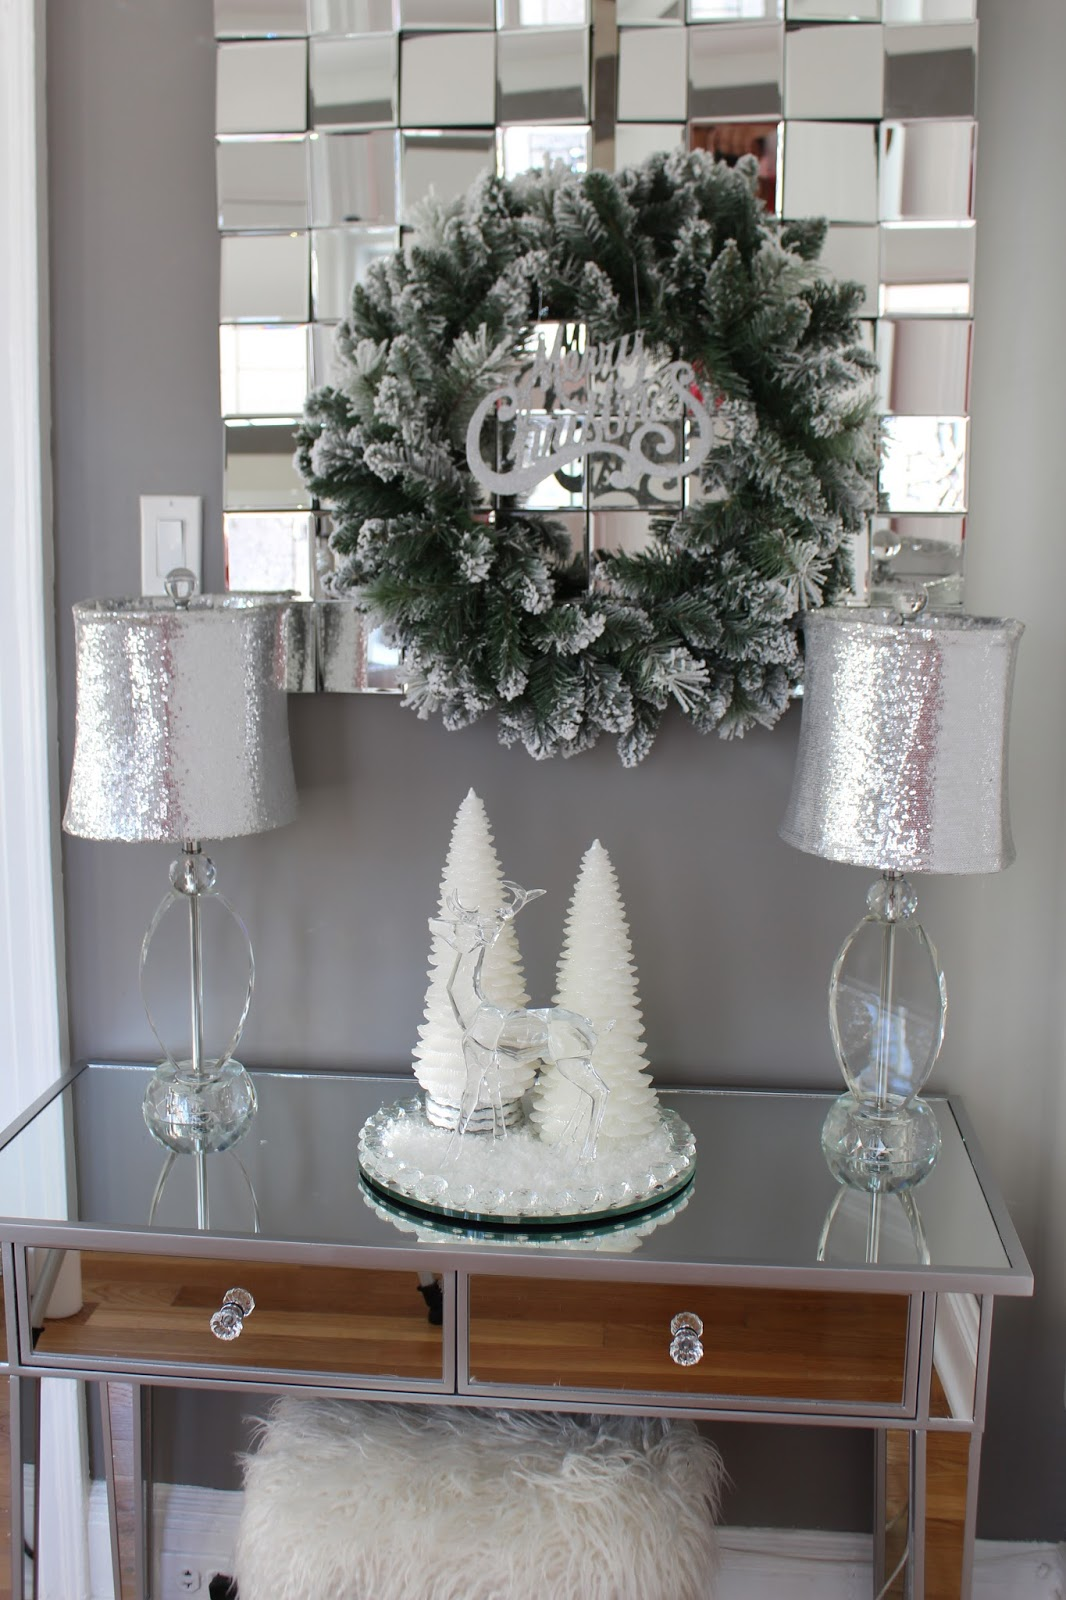 2017 Christmas Decorating Ideas   Entryway   KATE LOVE STYLE 2017 Christmas Decorating Ideas   Entryway